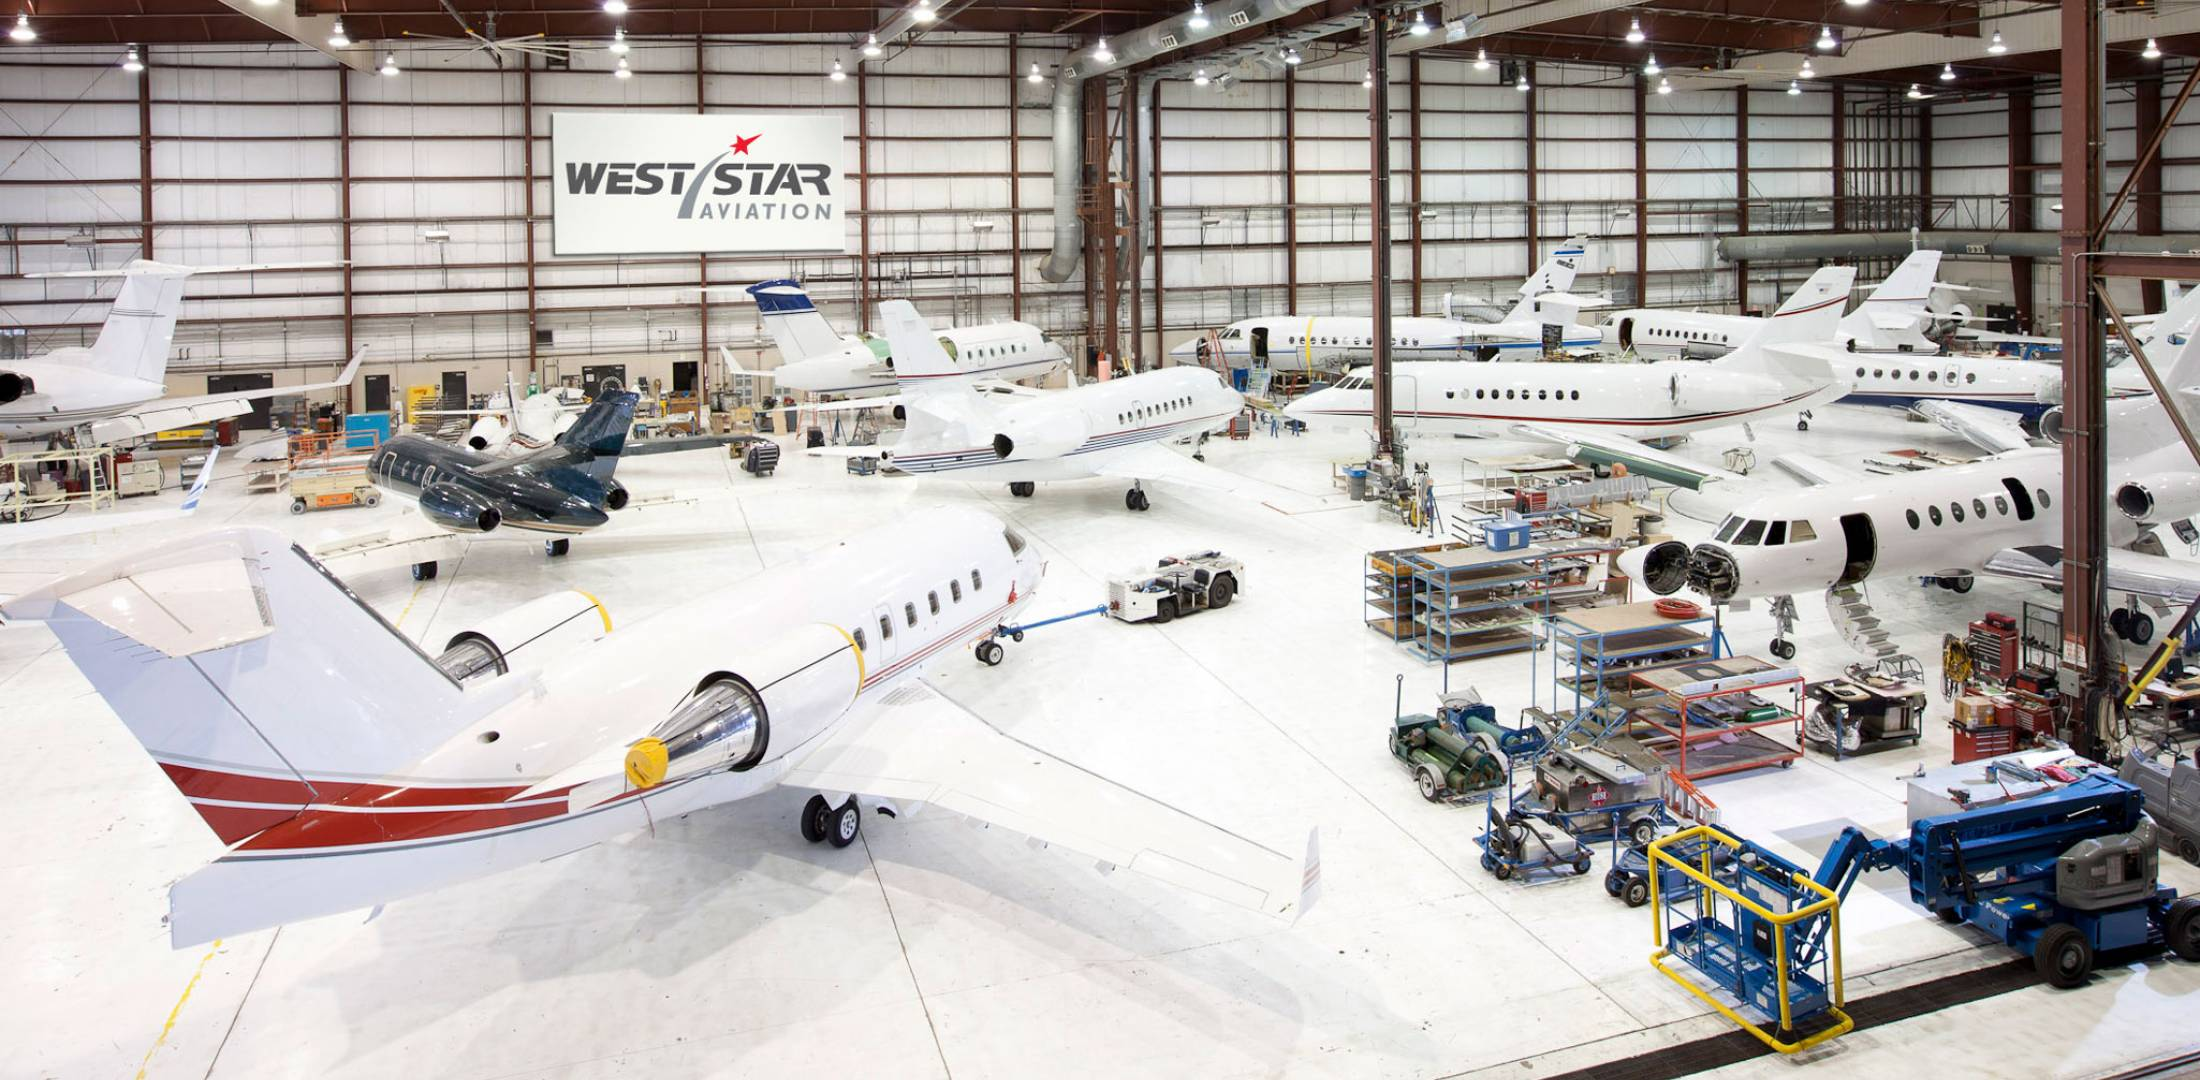 West Star Aviation Outlines Expansion Plans   Business Aviation News     West Star Aviation s East Alton  Illinois location is the site of the new     Hangar 66    expansion  slated for completion in Q3 of 2018